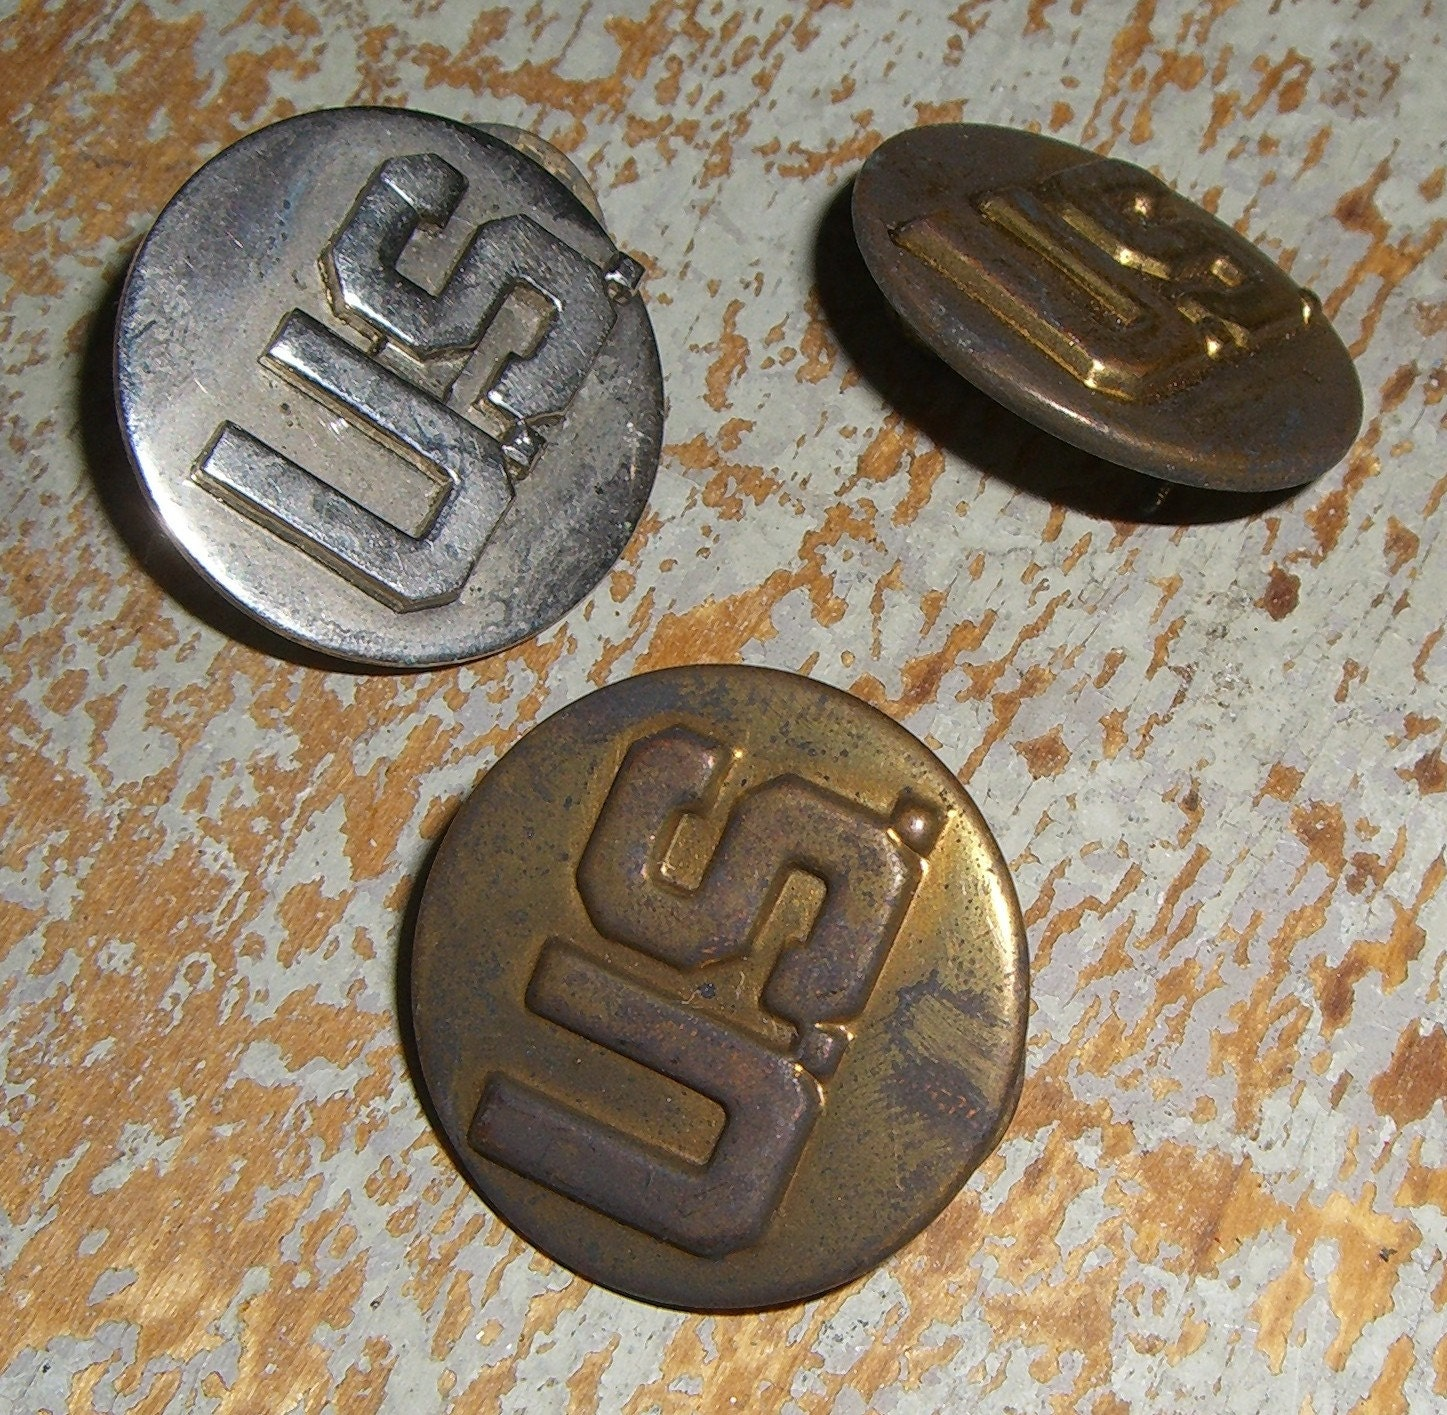 pins from military - photo #30